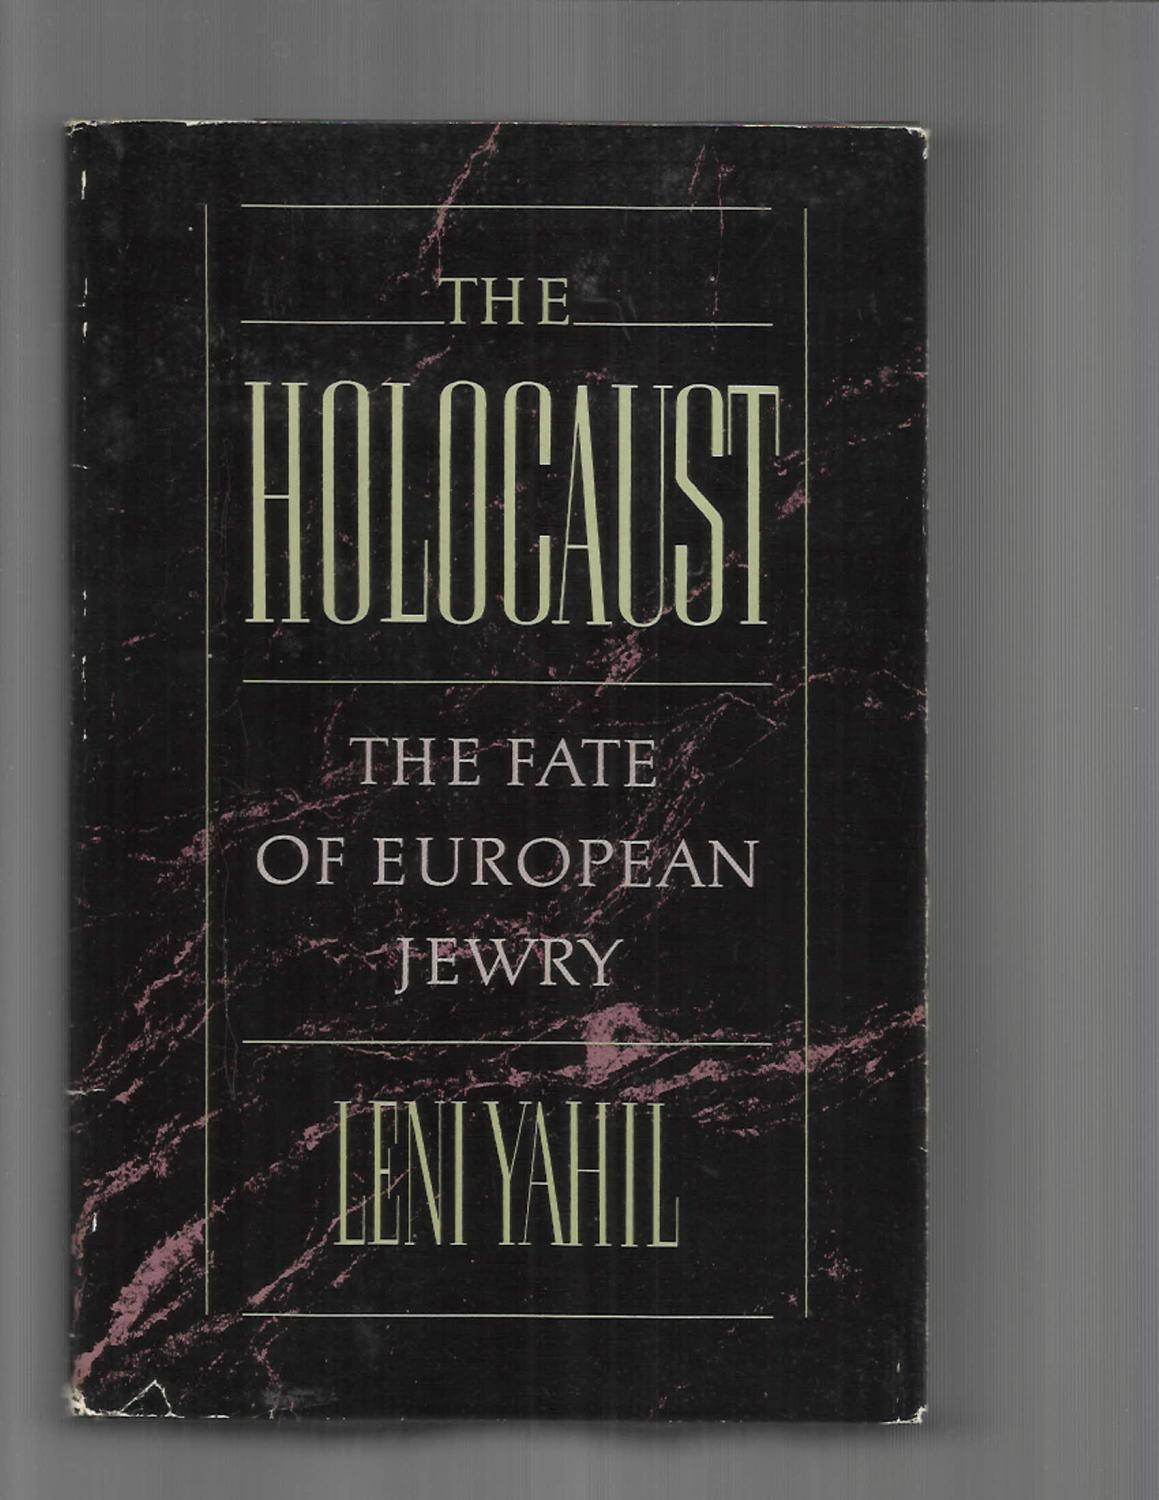 THE HOLOCAUST: The Fate Of European Jewry. Translated From The Hebrew By Ina Friedman and Haya Galai. - Yahil, Leni